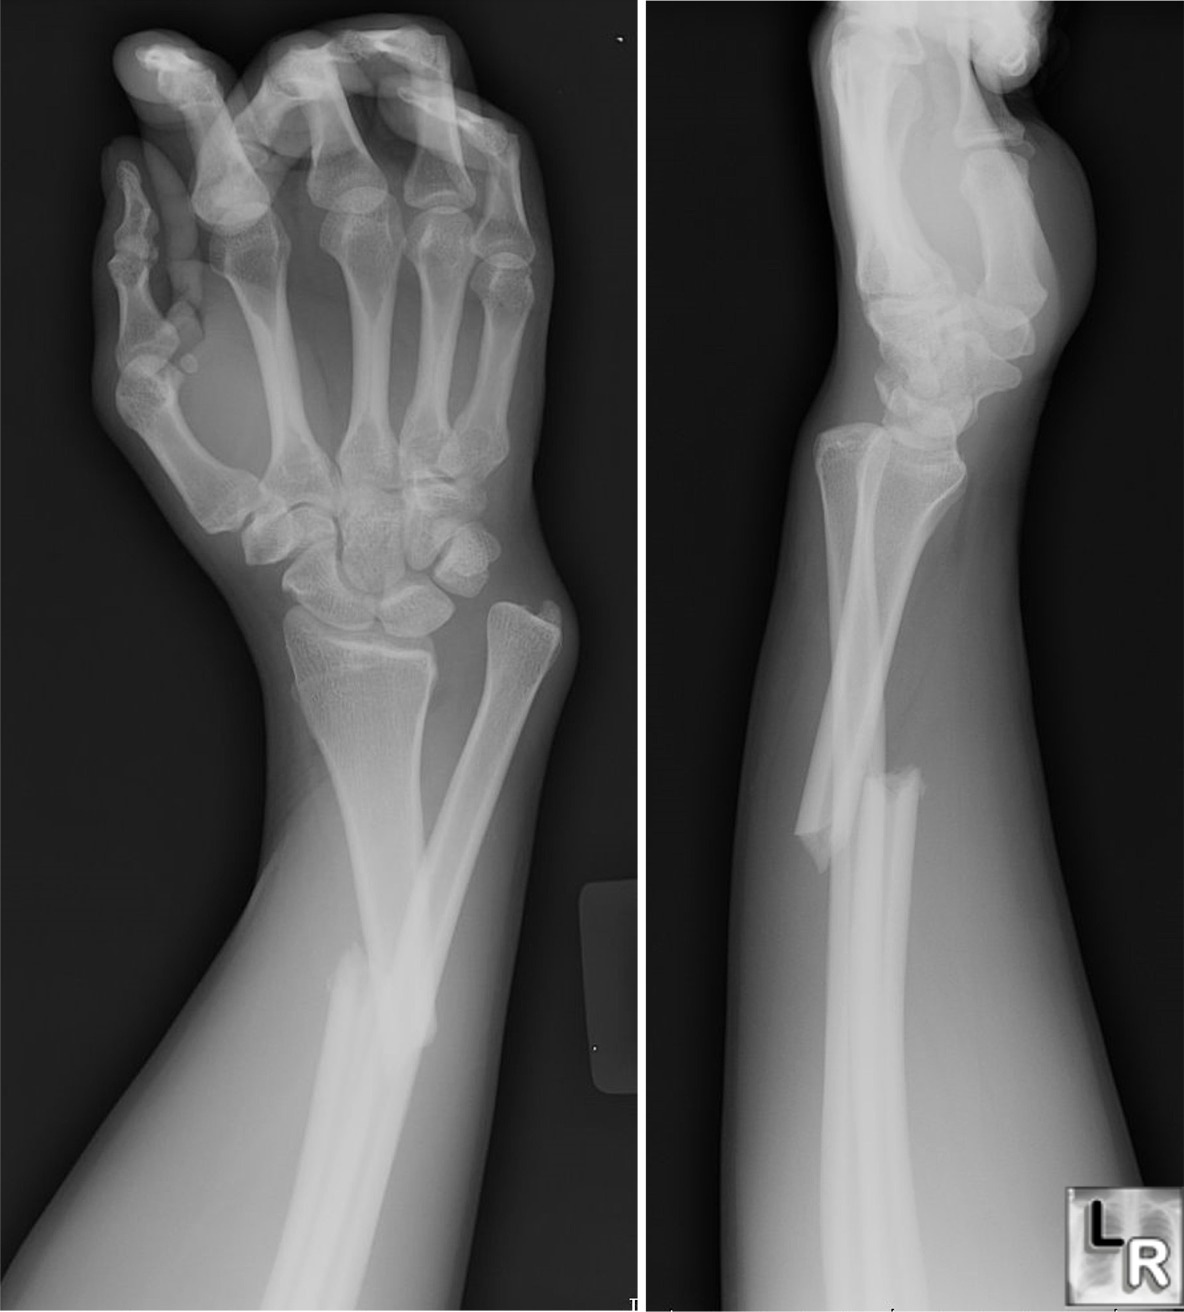 Broken Ulna Dislocated Elbow http://drkmberry.blogspot.com/2010/06/radiology-3-radial-ulnar-bone-fractures.html